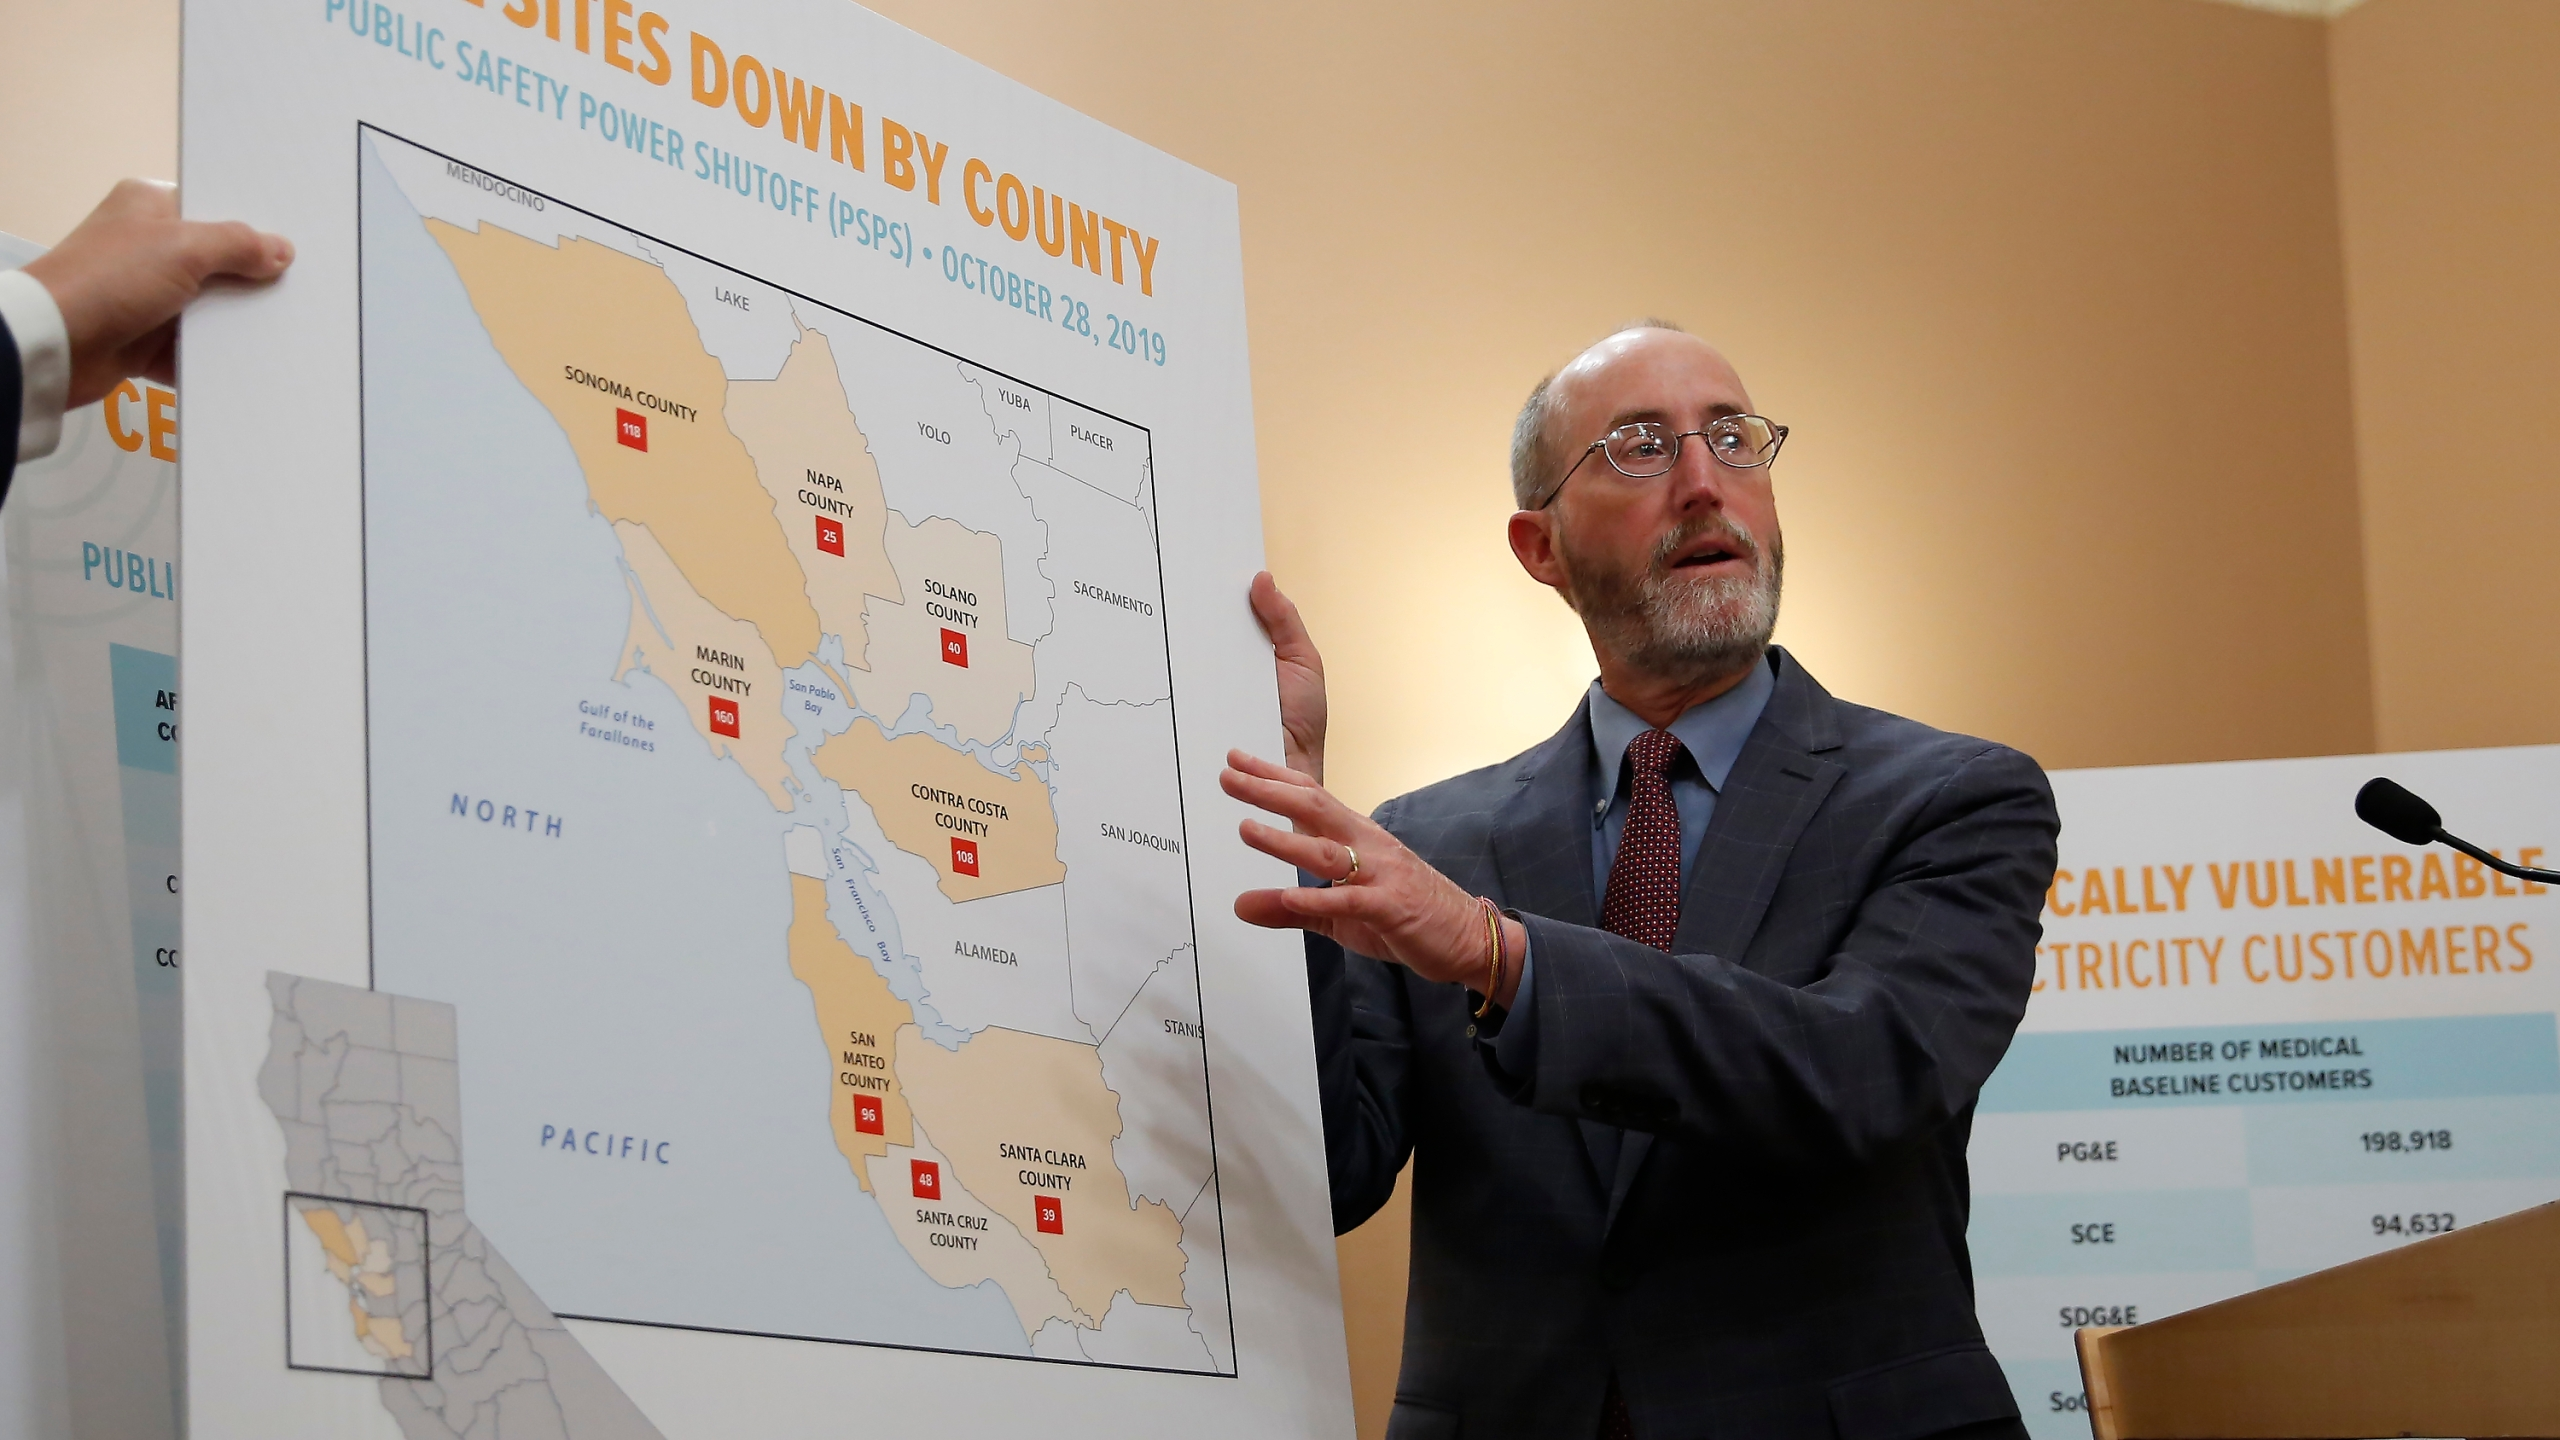 Sen. Steve Glazer, D-Orinda, displays a chart showing cell tower sites that were shut down during power outages in 2019, in Sacramento on Jan. 8, 2020. (AP Photo/Rich Pedroncelli, File)